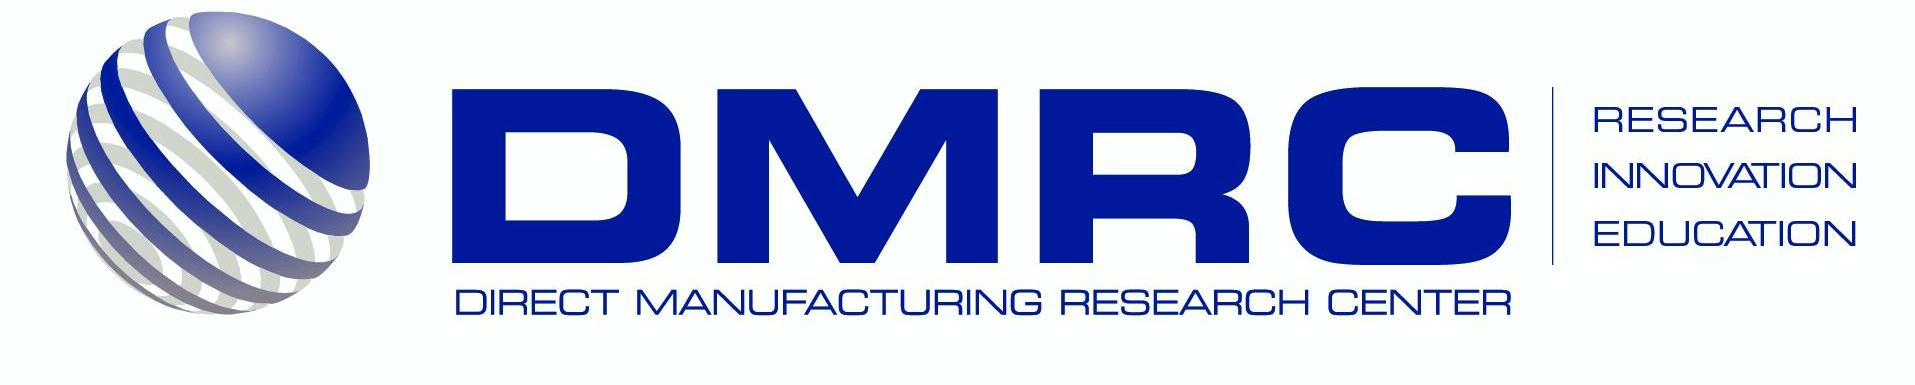 Direct Manufacturing Research Center (DMRC)